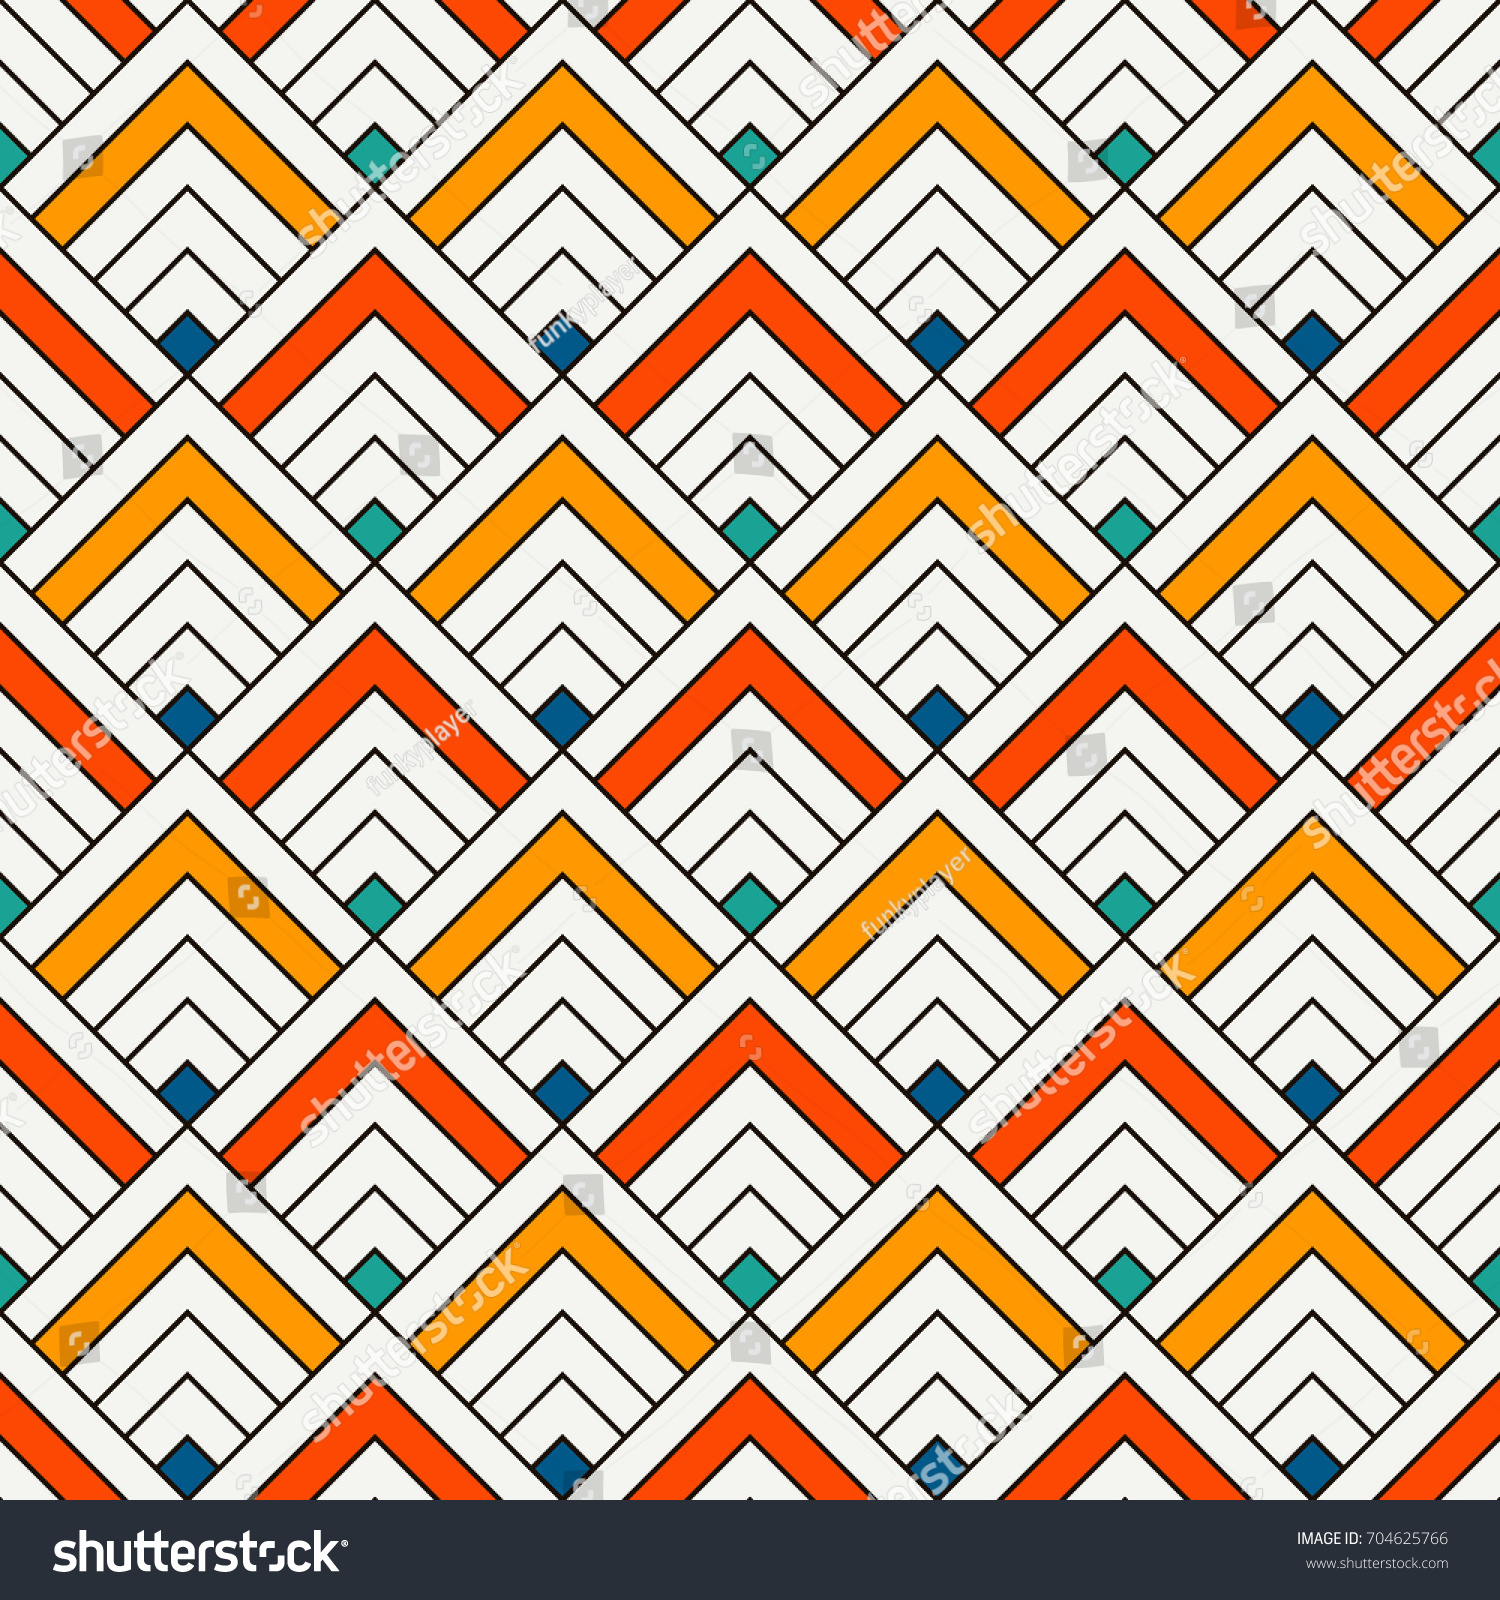 Repeated Chevrons Abstract Wallpaper Asian Traditional Stock Vector 704625766